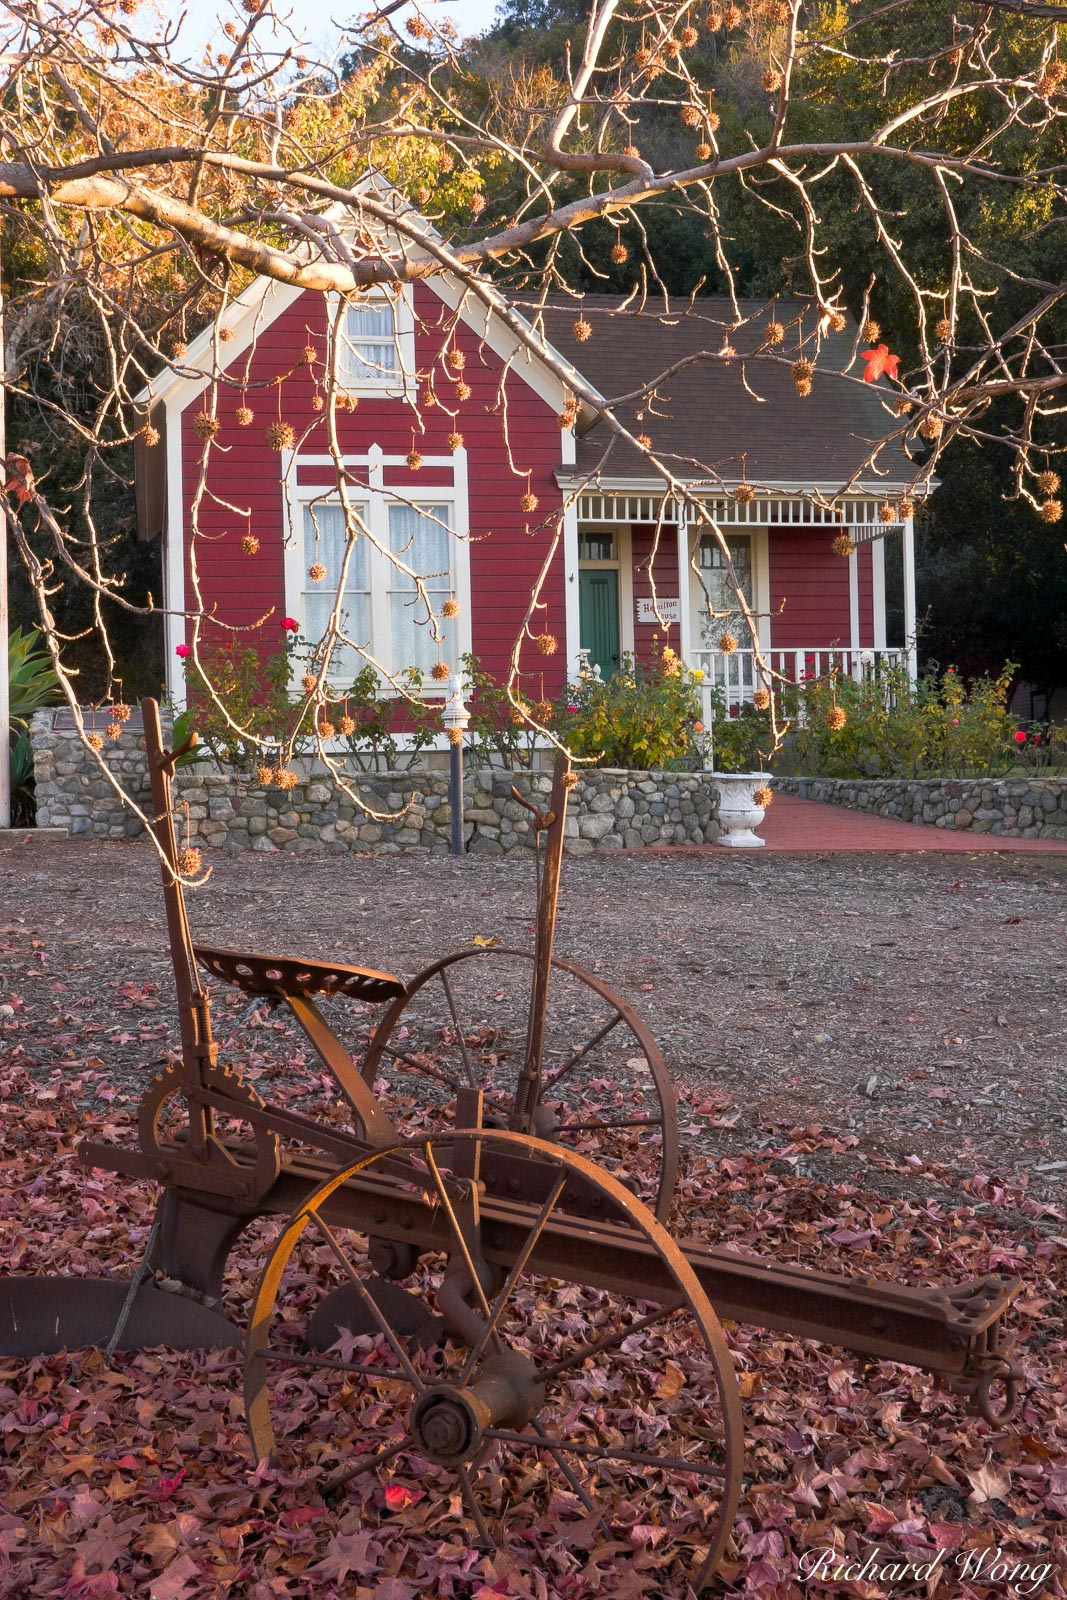 Hamilton House, Antique Farming Equipment and Liquid Amber Tree in Fall Season / Centennial Heritage Park, Glendora, California, photo, photo